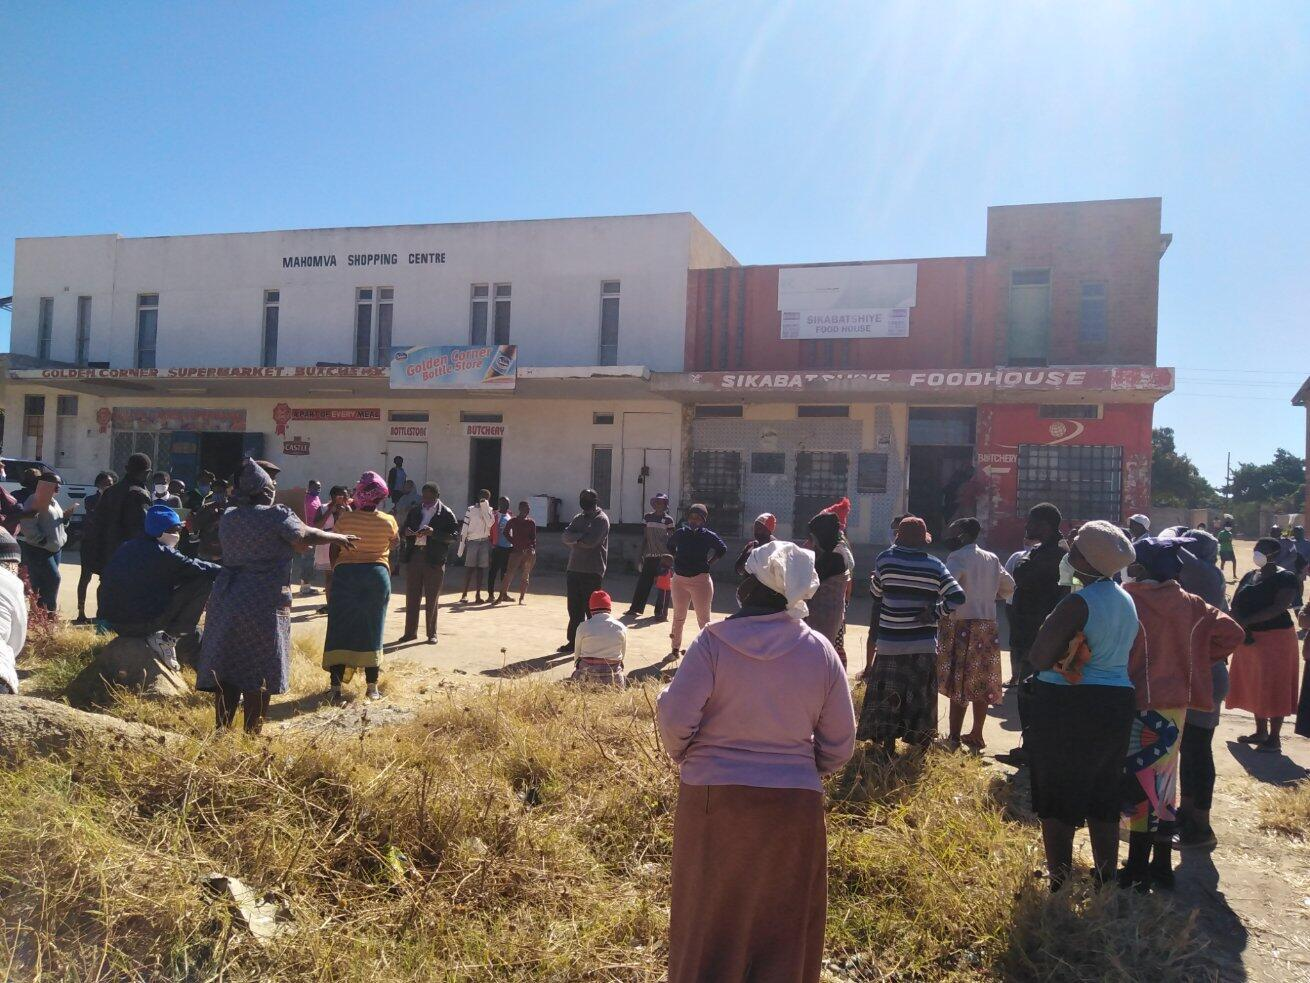 Residents of Mpopoma, a Bulawayo, Zimbabwe suburb, demonstrate that local shops are not taking their bond notes for payment, which is legal tender